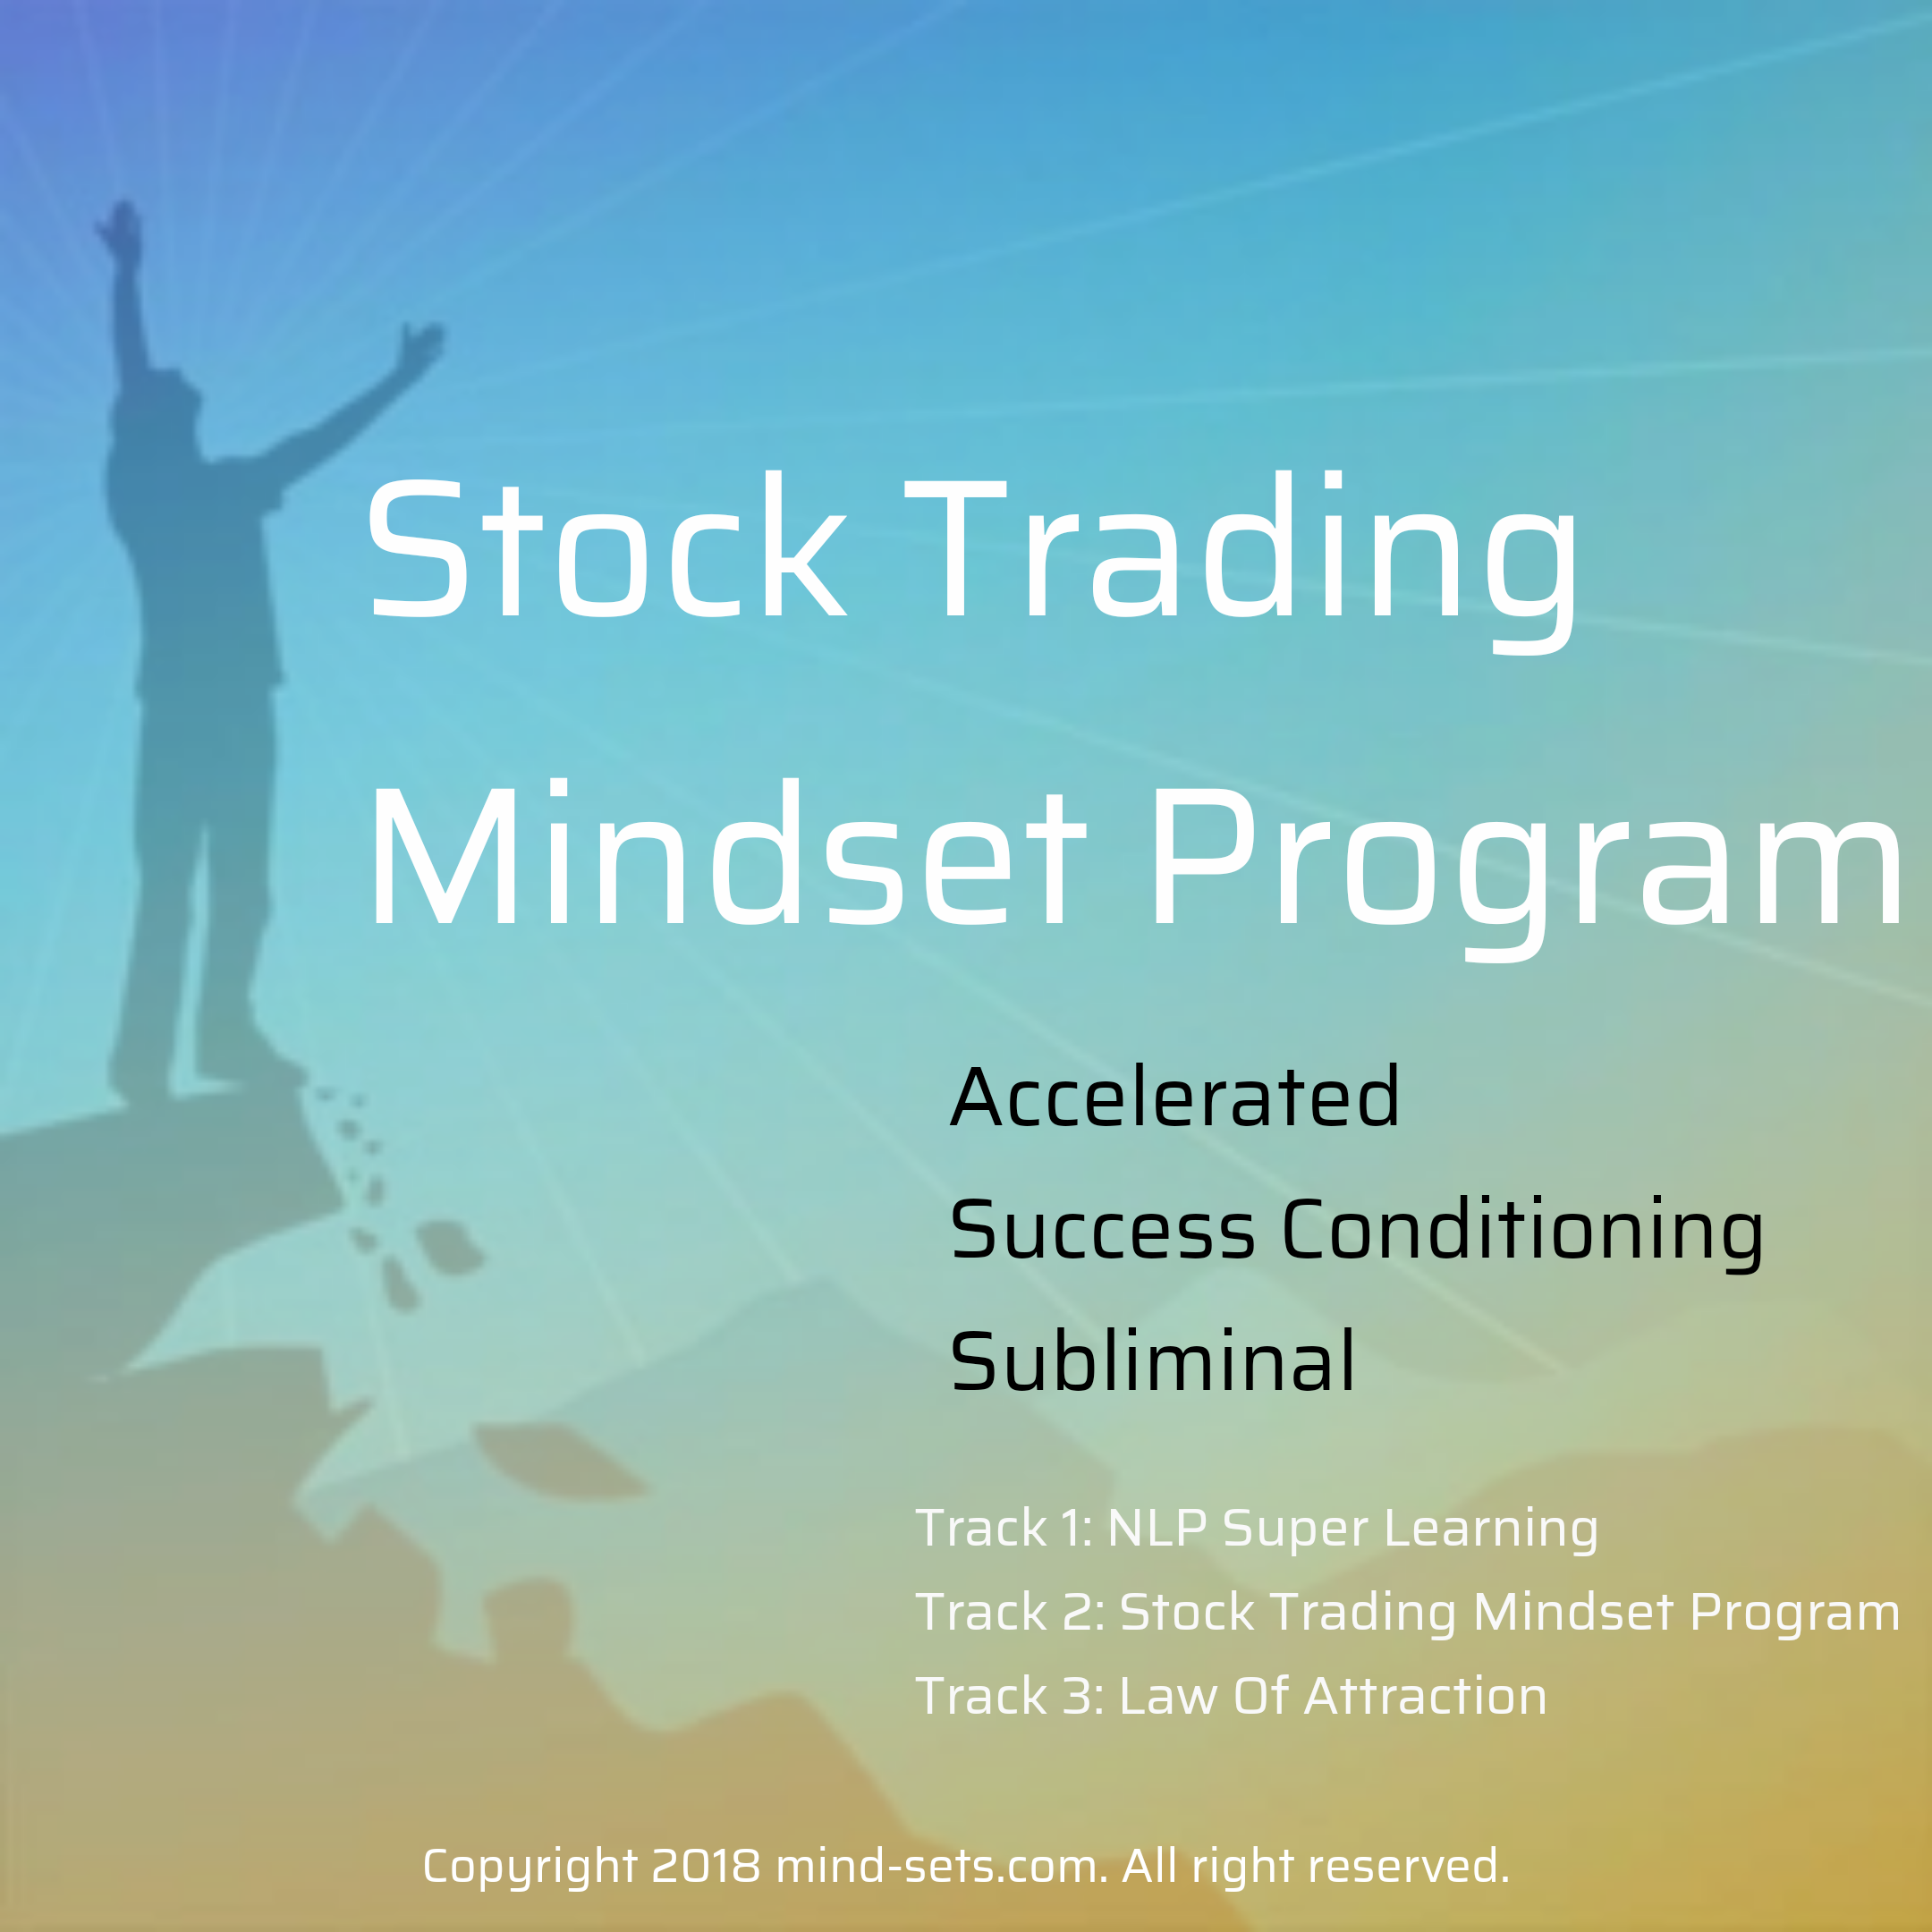 Stock Trading Mindset Program